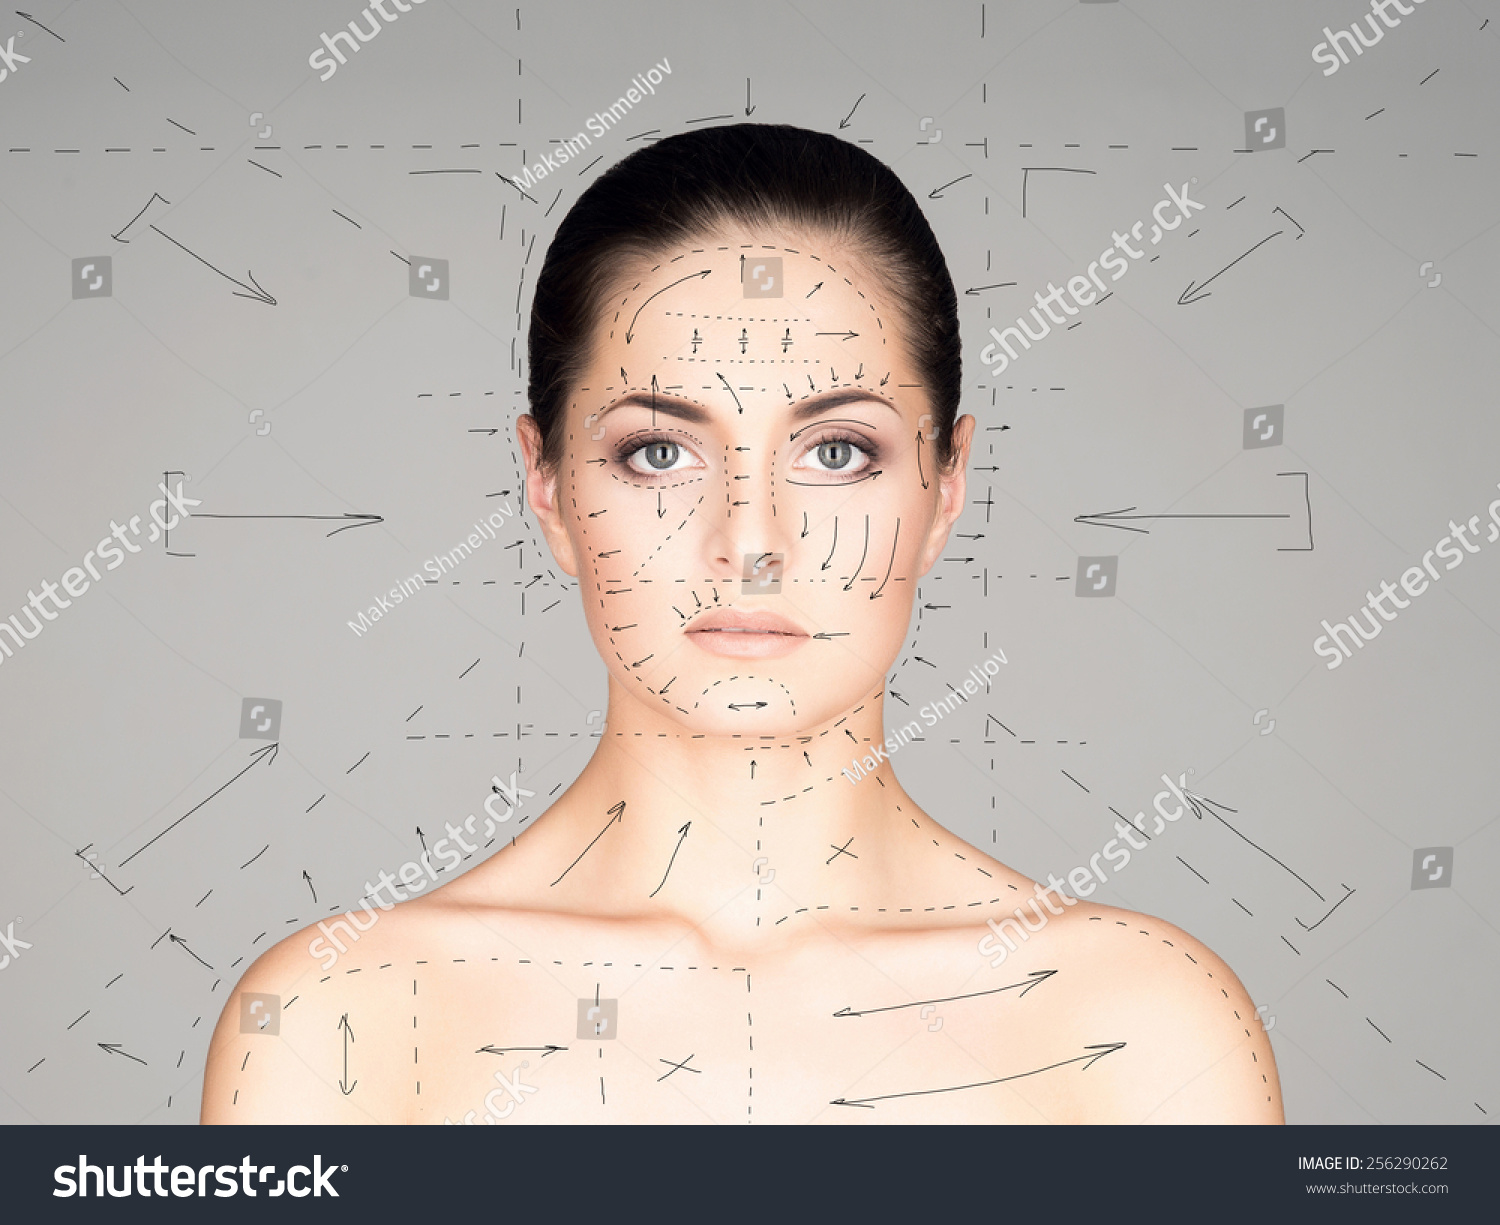 Close-up portrait of young beautiful and healthy woman ready for plastic surgery treatment collage with drawing arrows